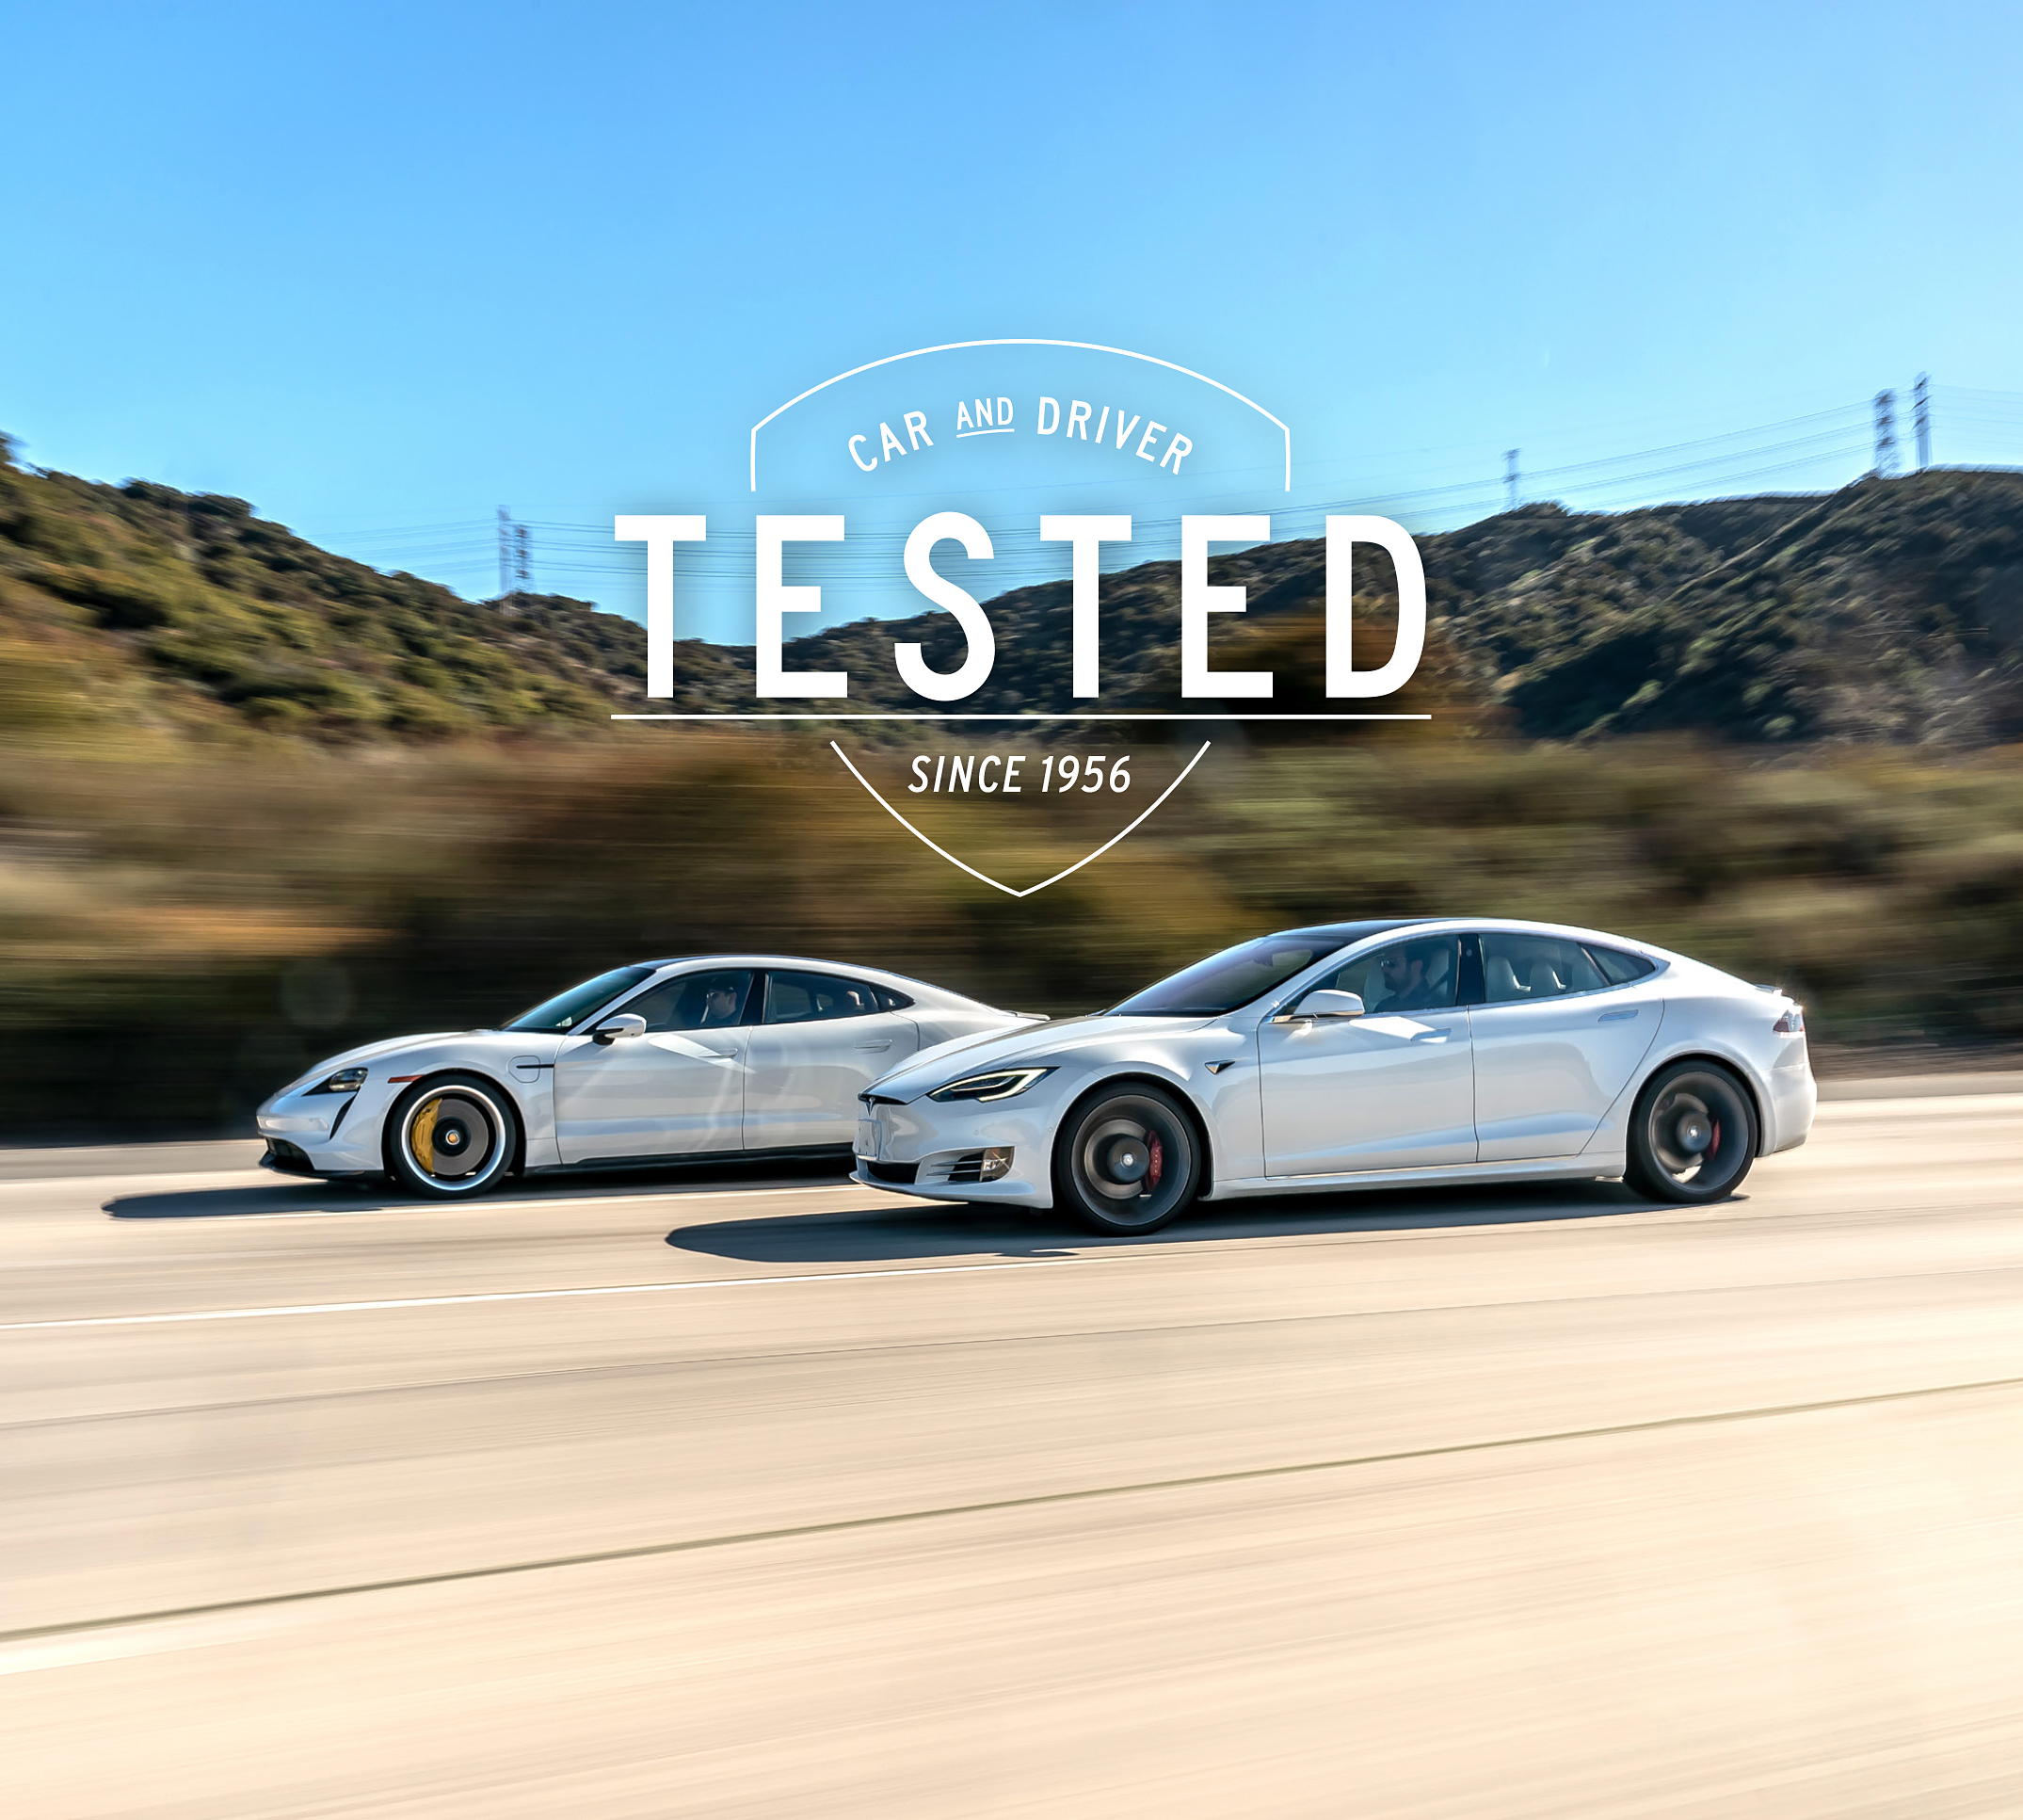 In Our Testing Porsche Taycan Range Nearly Equaled Tesla Model S